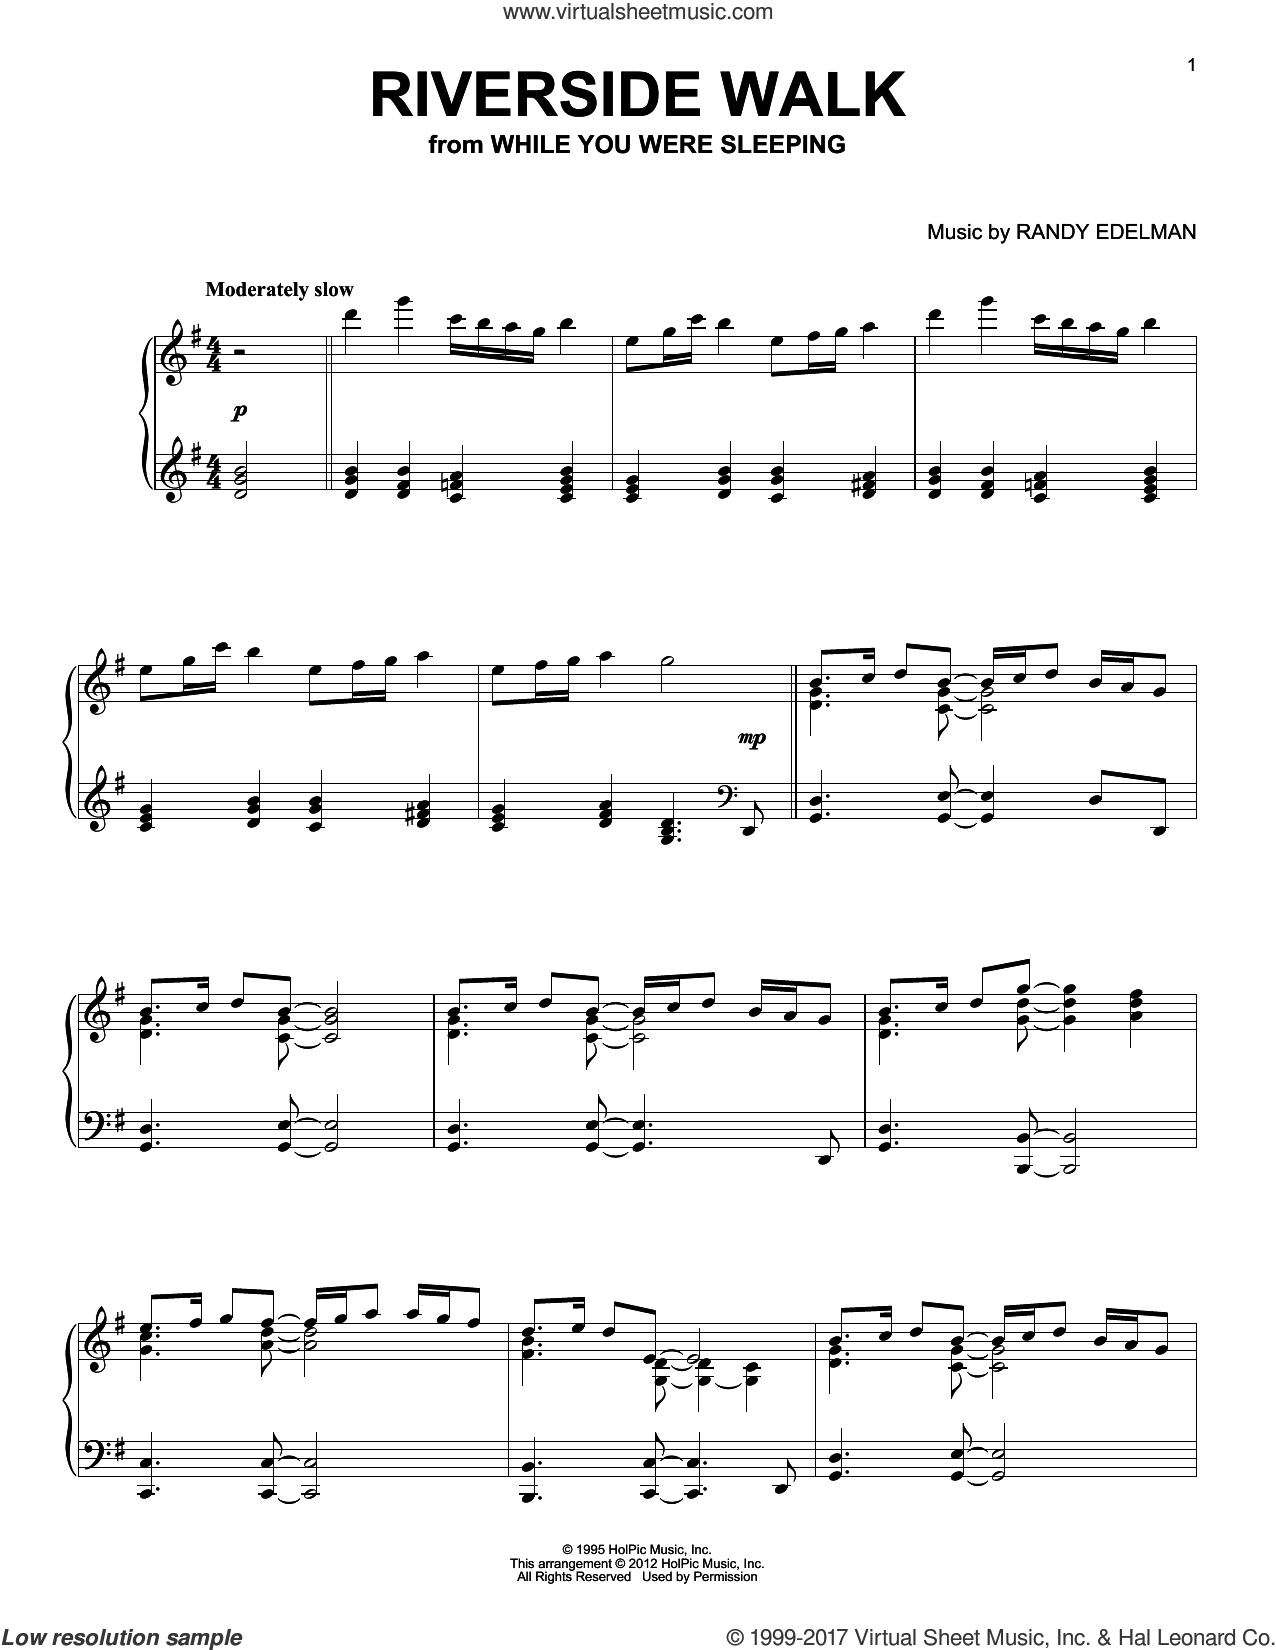 Riverside Walk sheet music for piano solo by Randy Edelman, intermediate skill level